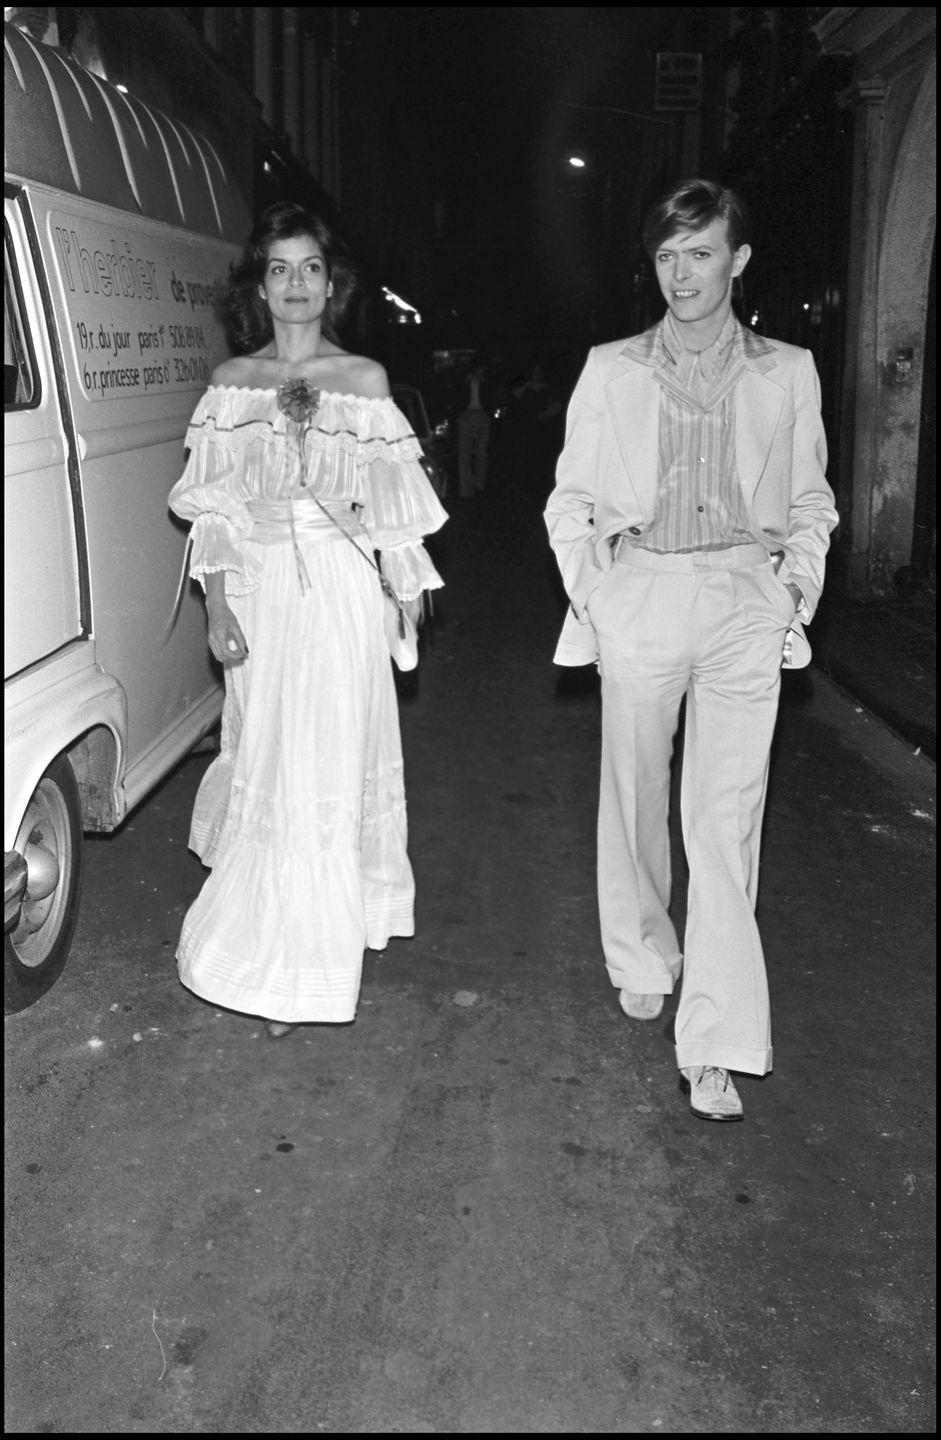 <p>Music legend David Bowie leaves a party in Paris with Bianca Jagger. She would go on to divorce Bowie's close friend, Mick Jagger, just one year later.</p>